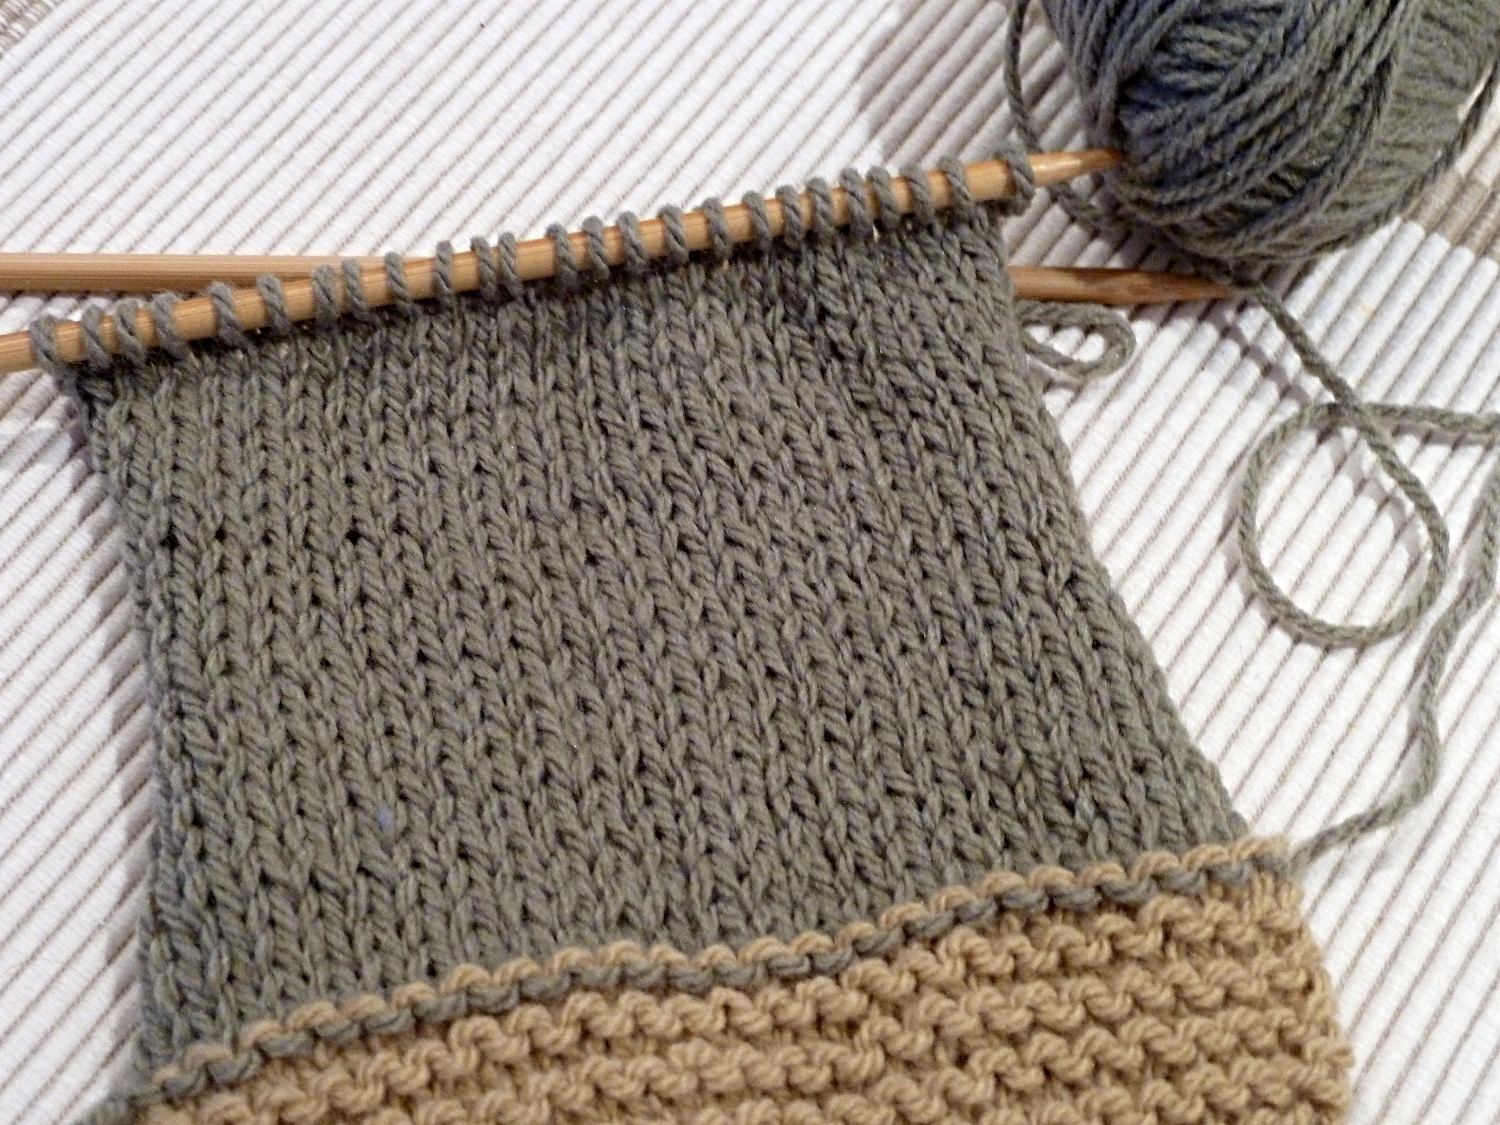 Knitting Yarn Over Purl Stitch : Knitting for beginners a stitching odyssey